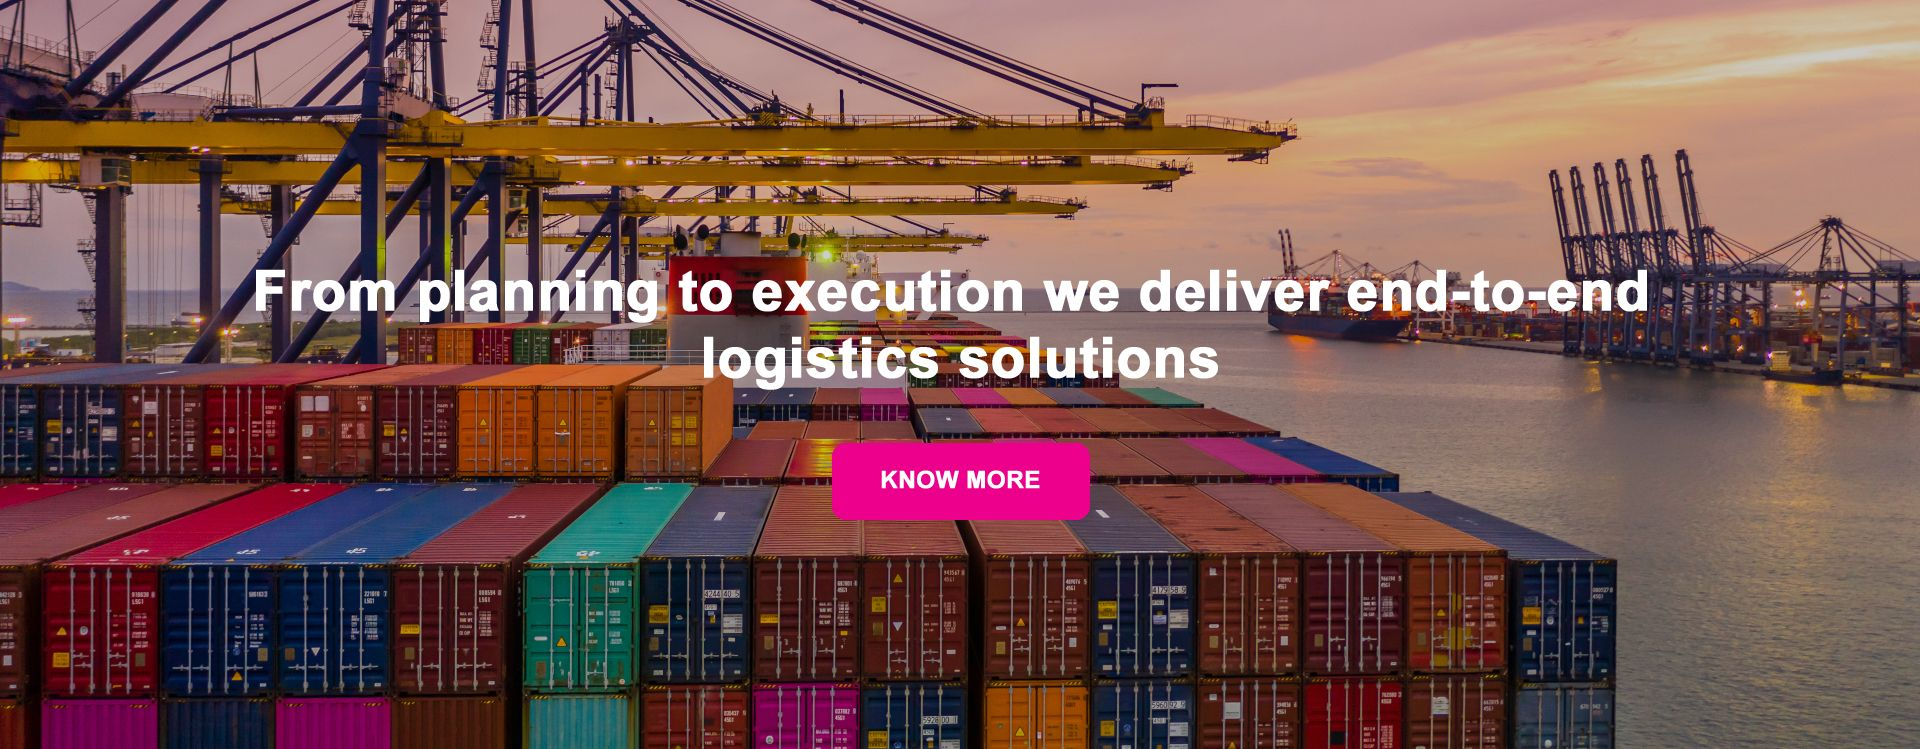 From planning to execution we deliver end-to-end logistics solutions